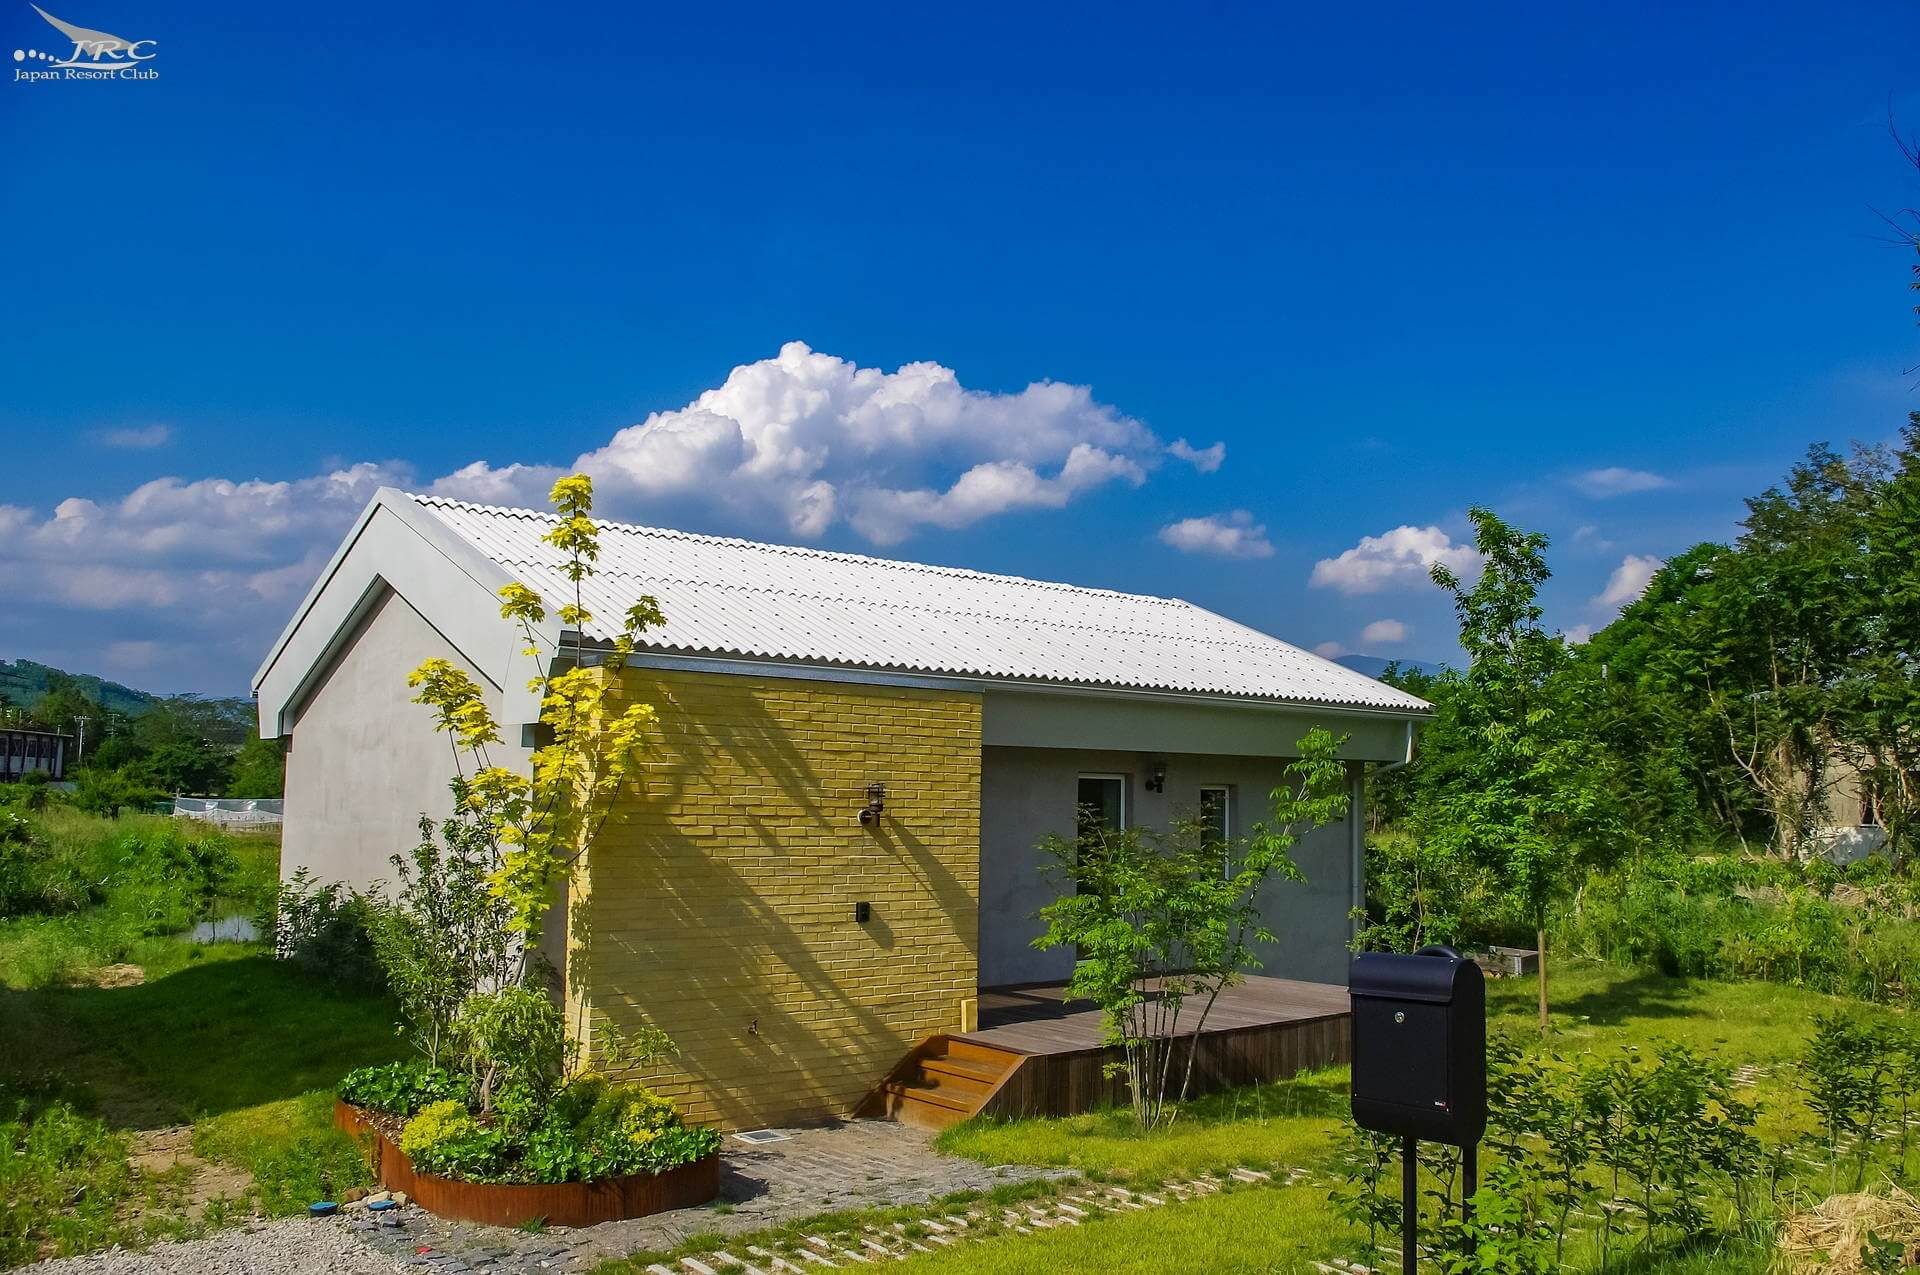 27 million yen [Nagano] Ueda world's most happy country, Danish peaceful house, summer is cool, winter is warm and comfortable